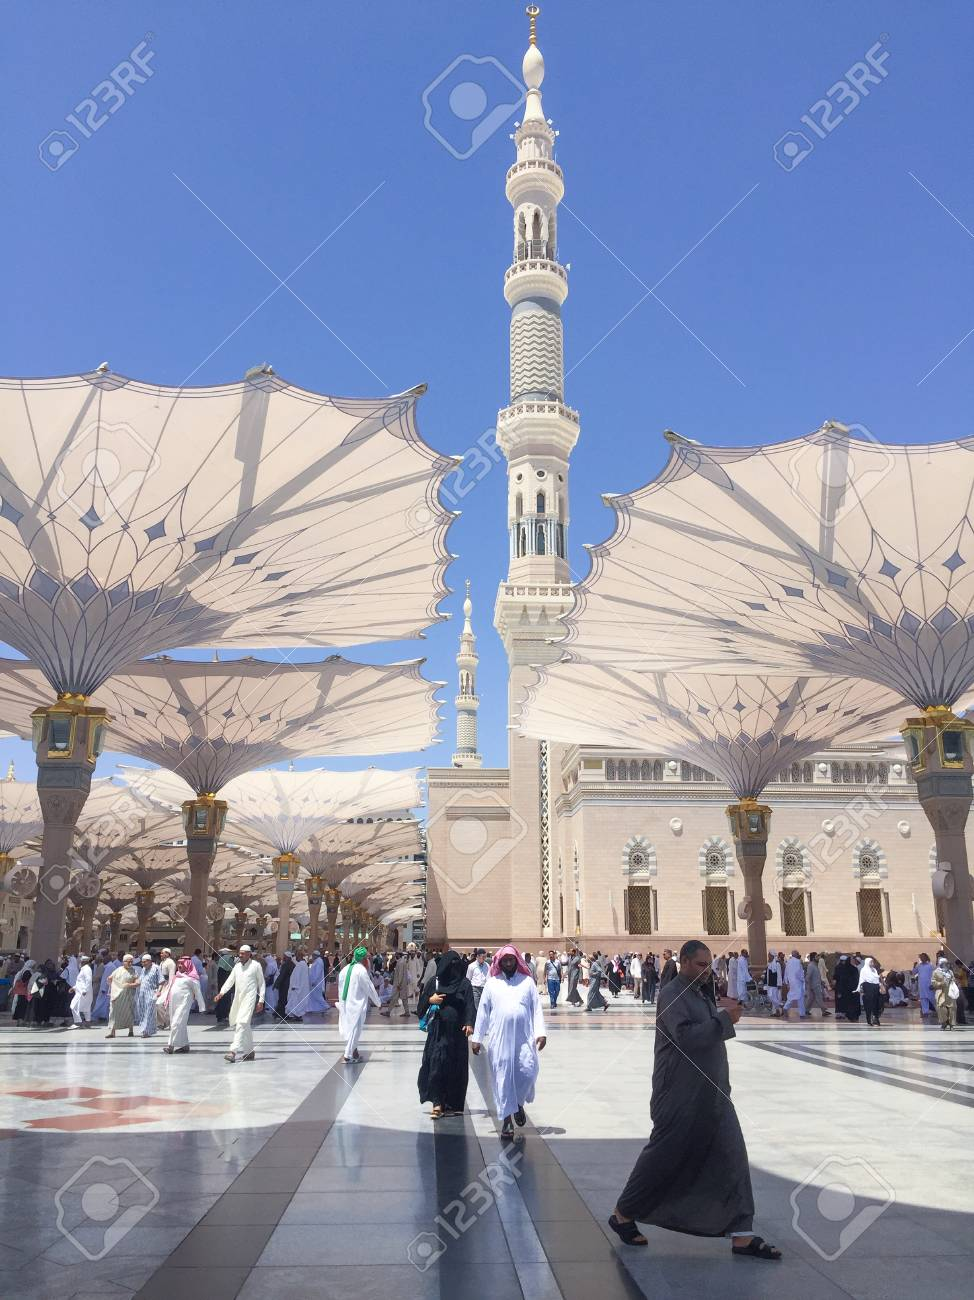 MEDINA, SAUDI ARABIA - APRIL 19, 2016 : Prophet Muhammad Mosque